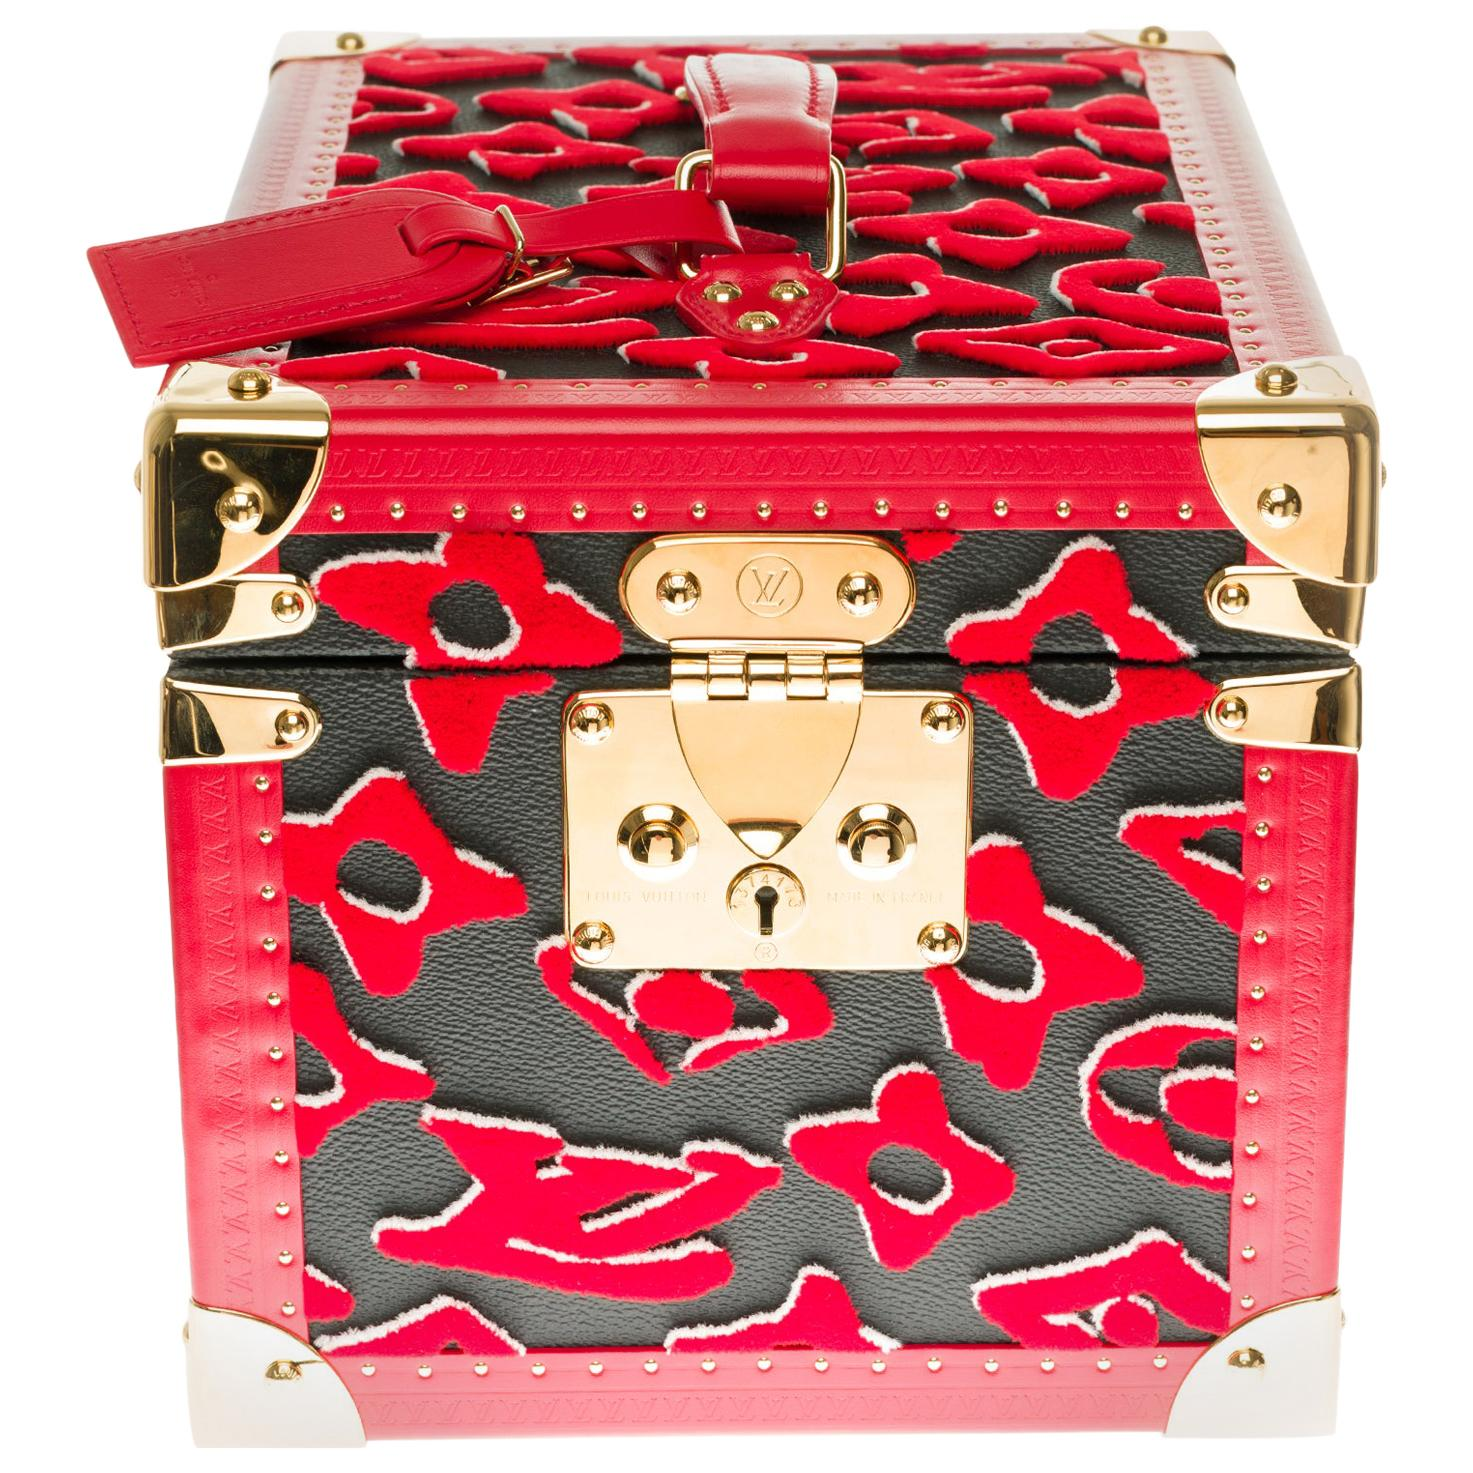 Ultra limited/Few pieces in the world/Louis Vuitton Vanity Case in red Tufa